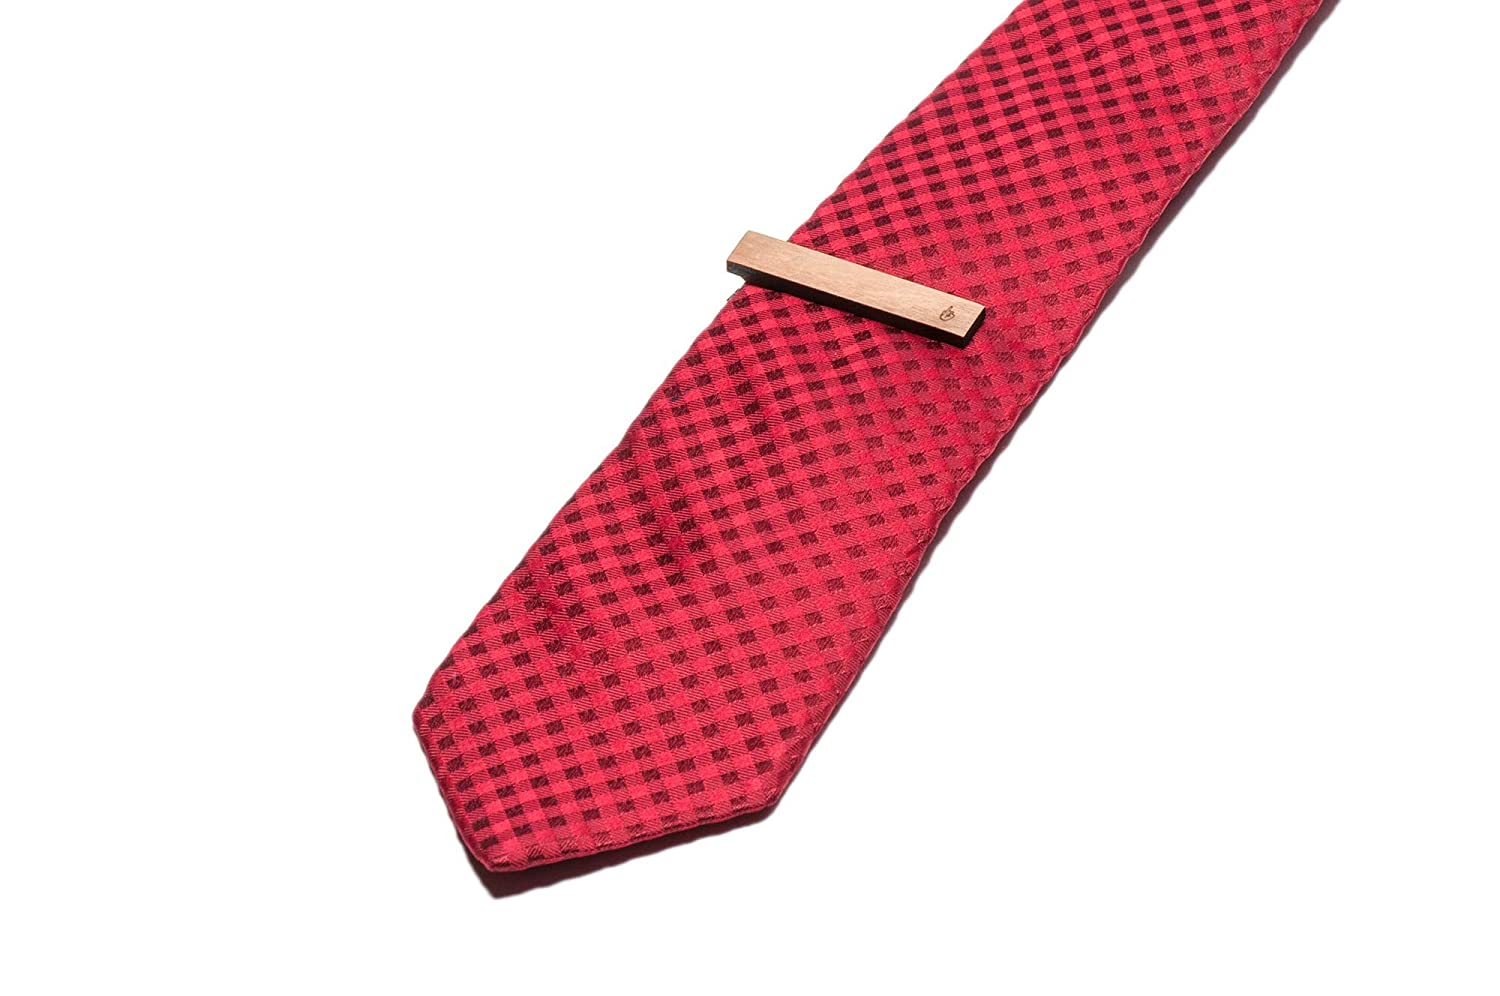 Wooden Accessories Company Wooden Tie Clips with Laser Engraved Ring Finger Design Cherry Wood Tie Bar Engraved in The USA